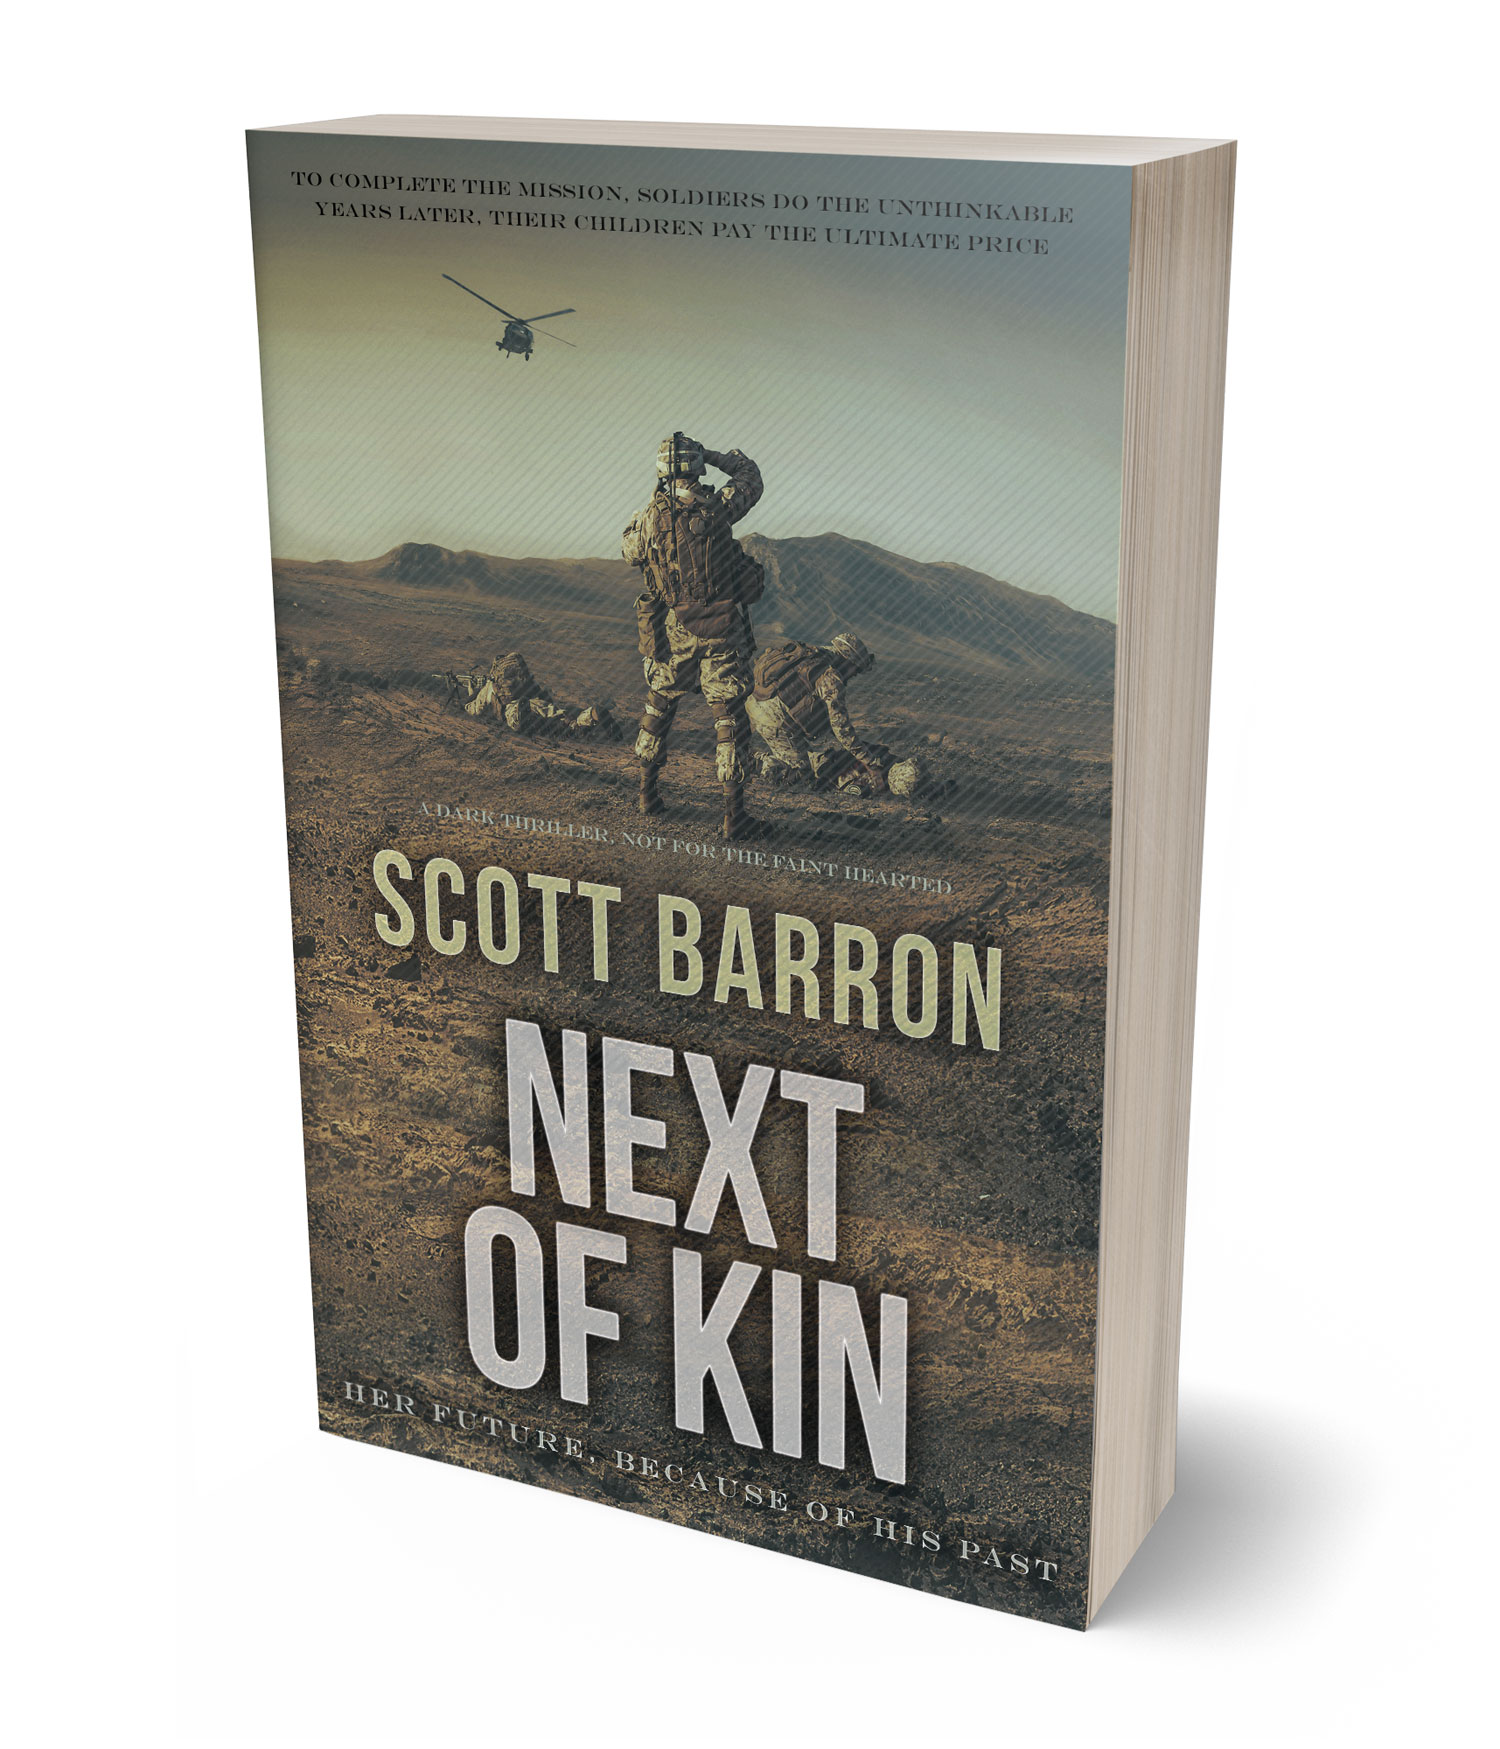 Available in paperback format Next of Kin by Scott Barron